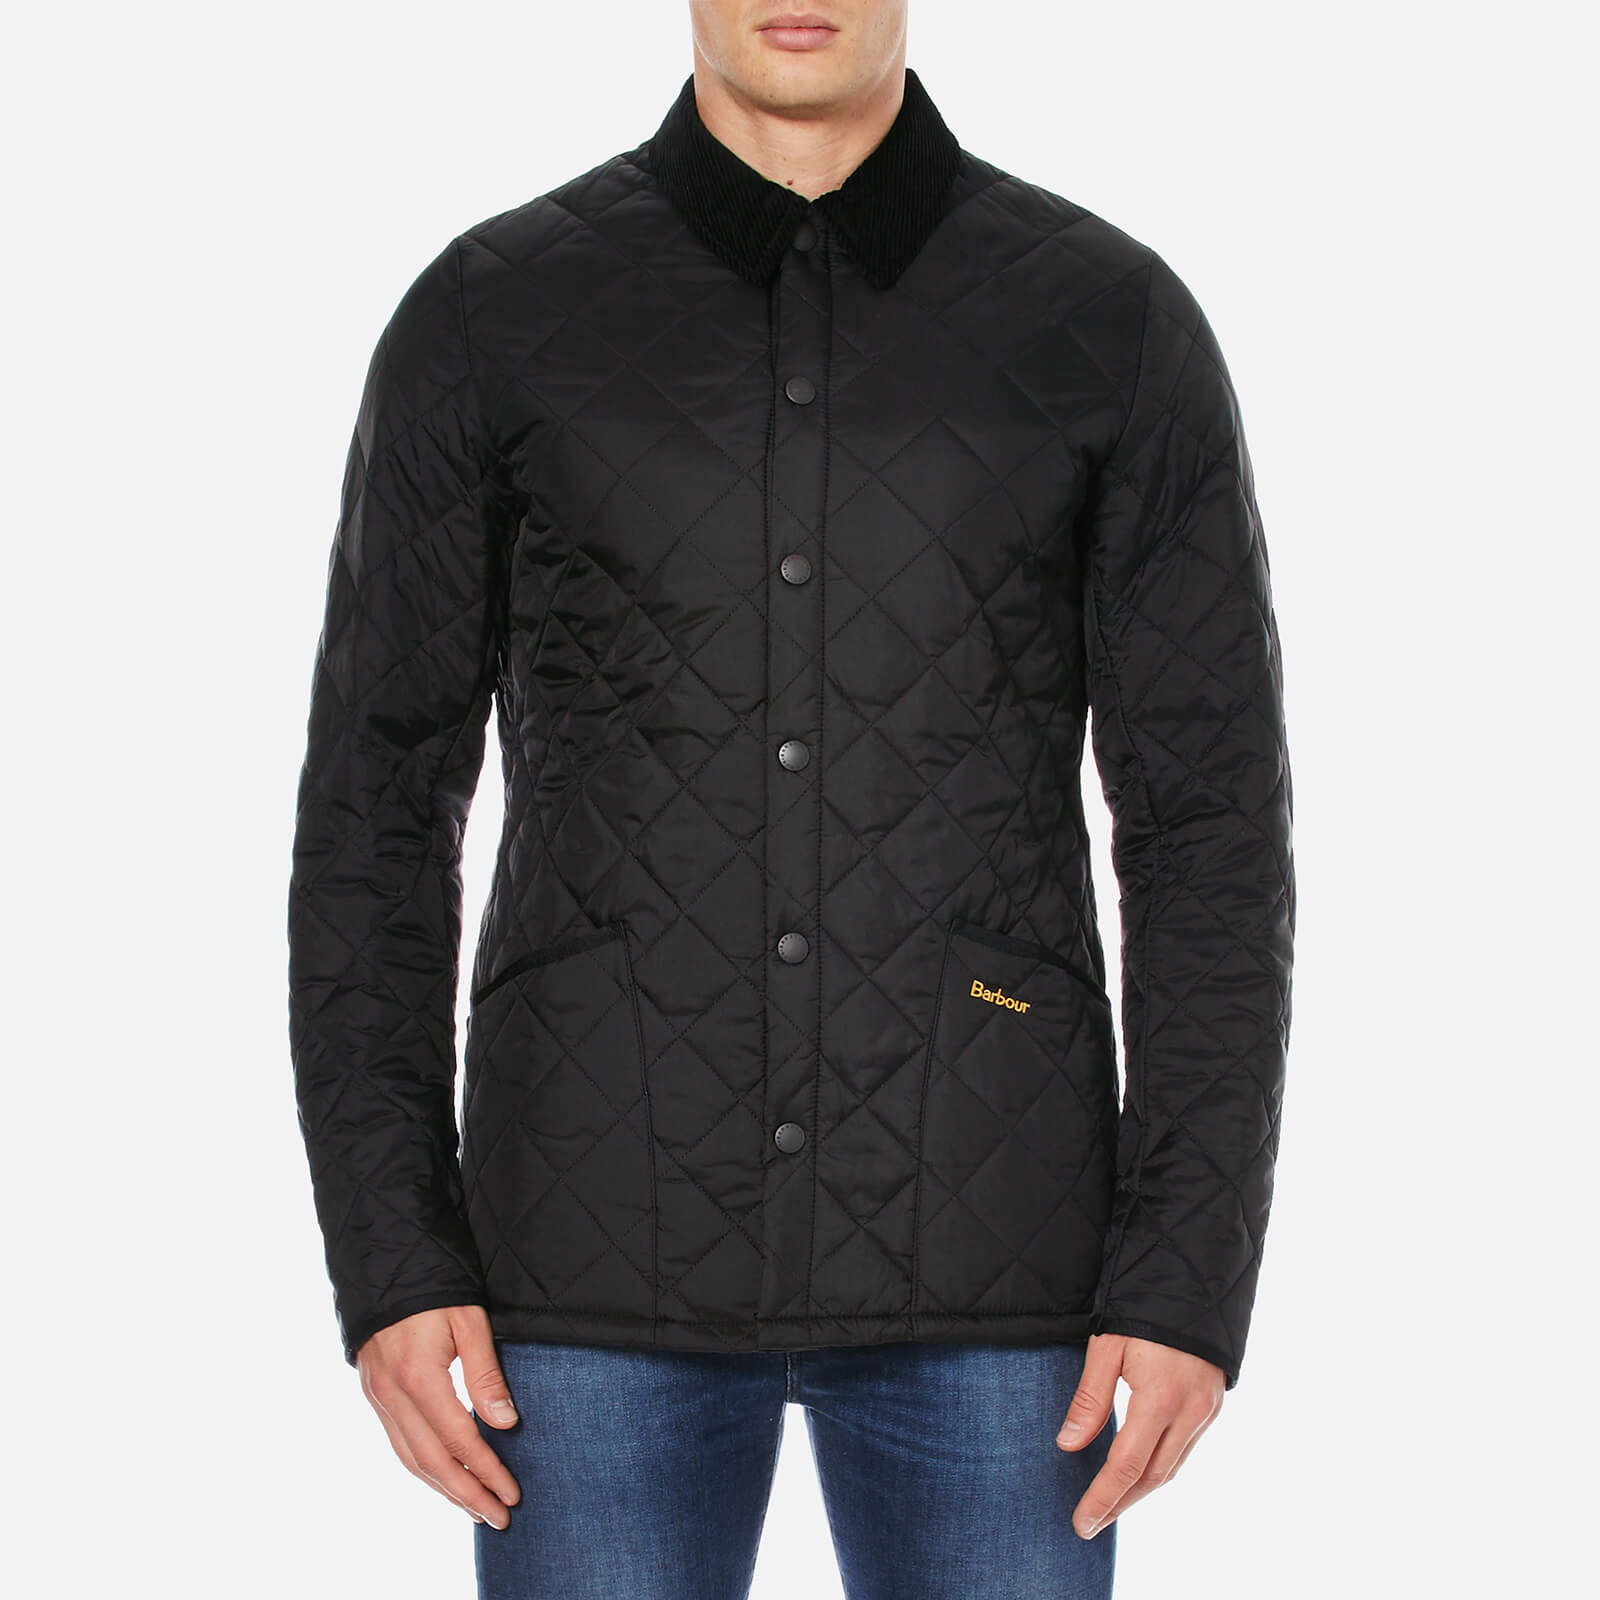 df8425d6911d9 Barbour Men's Heritage Liddesdale Quilt Jacket - Black